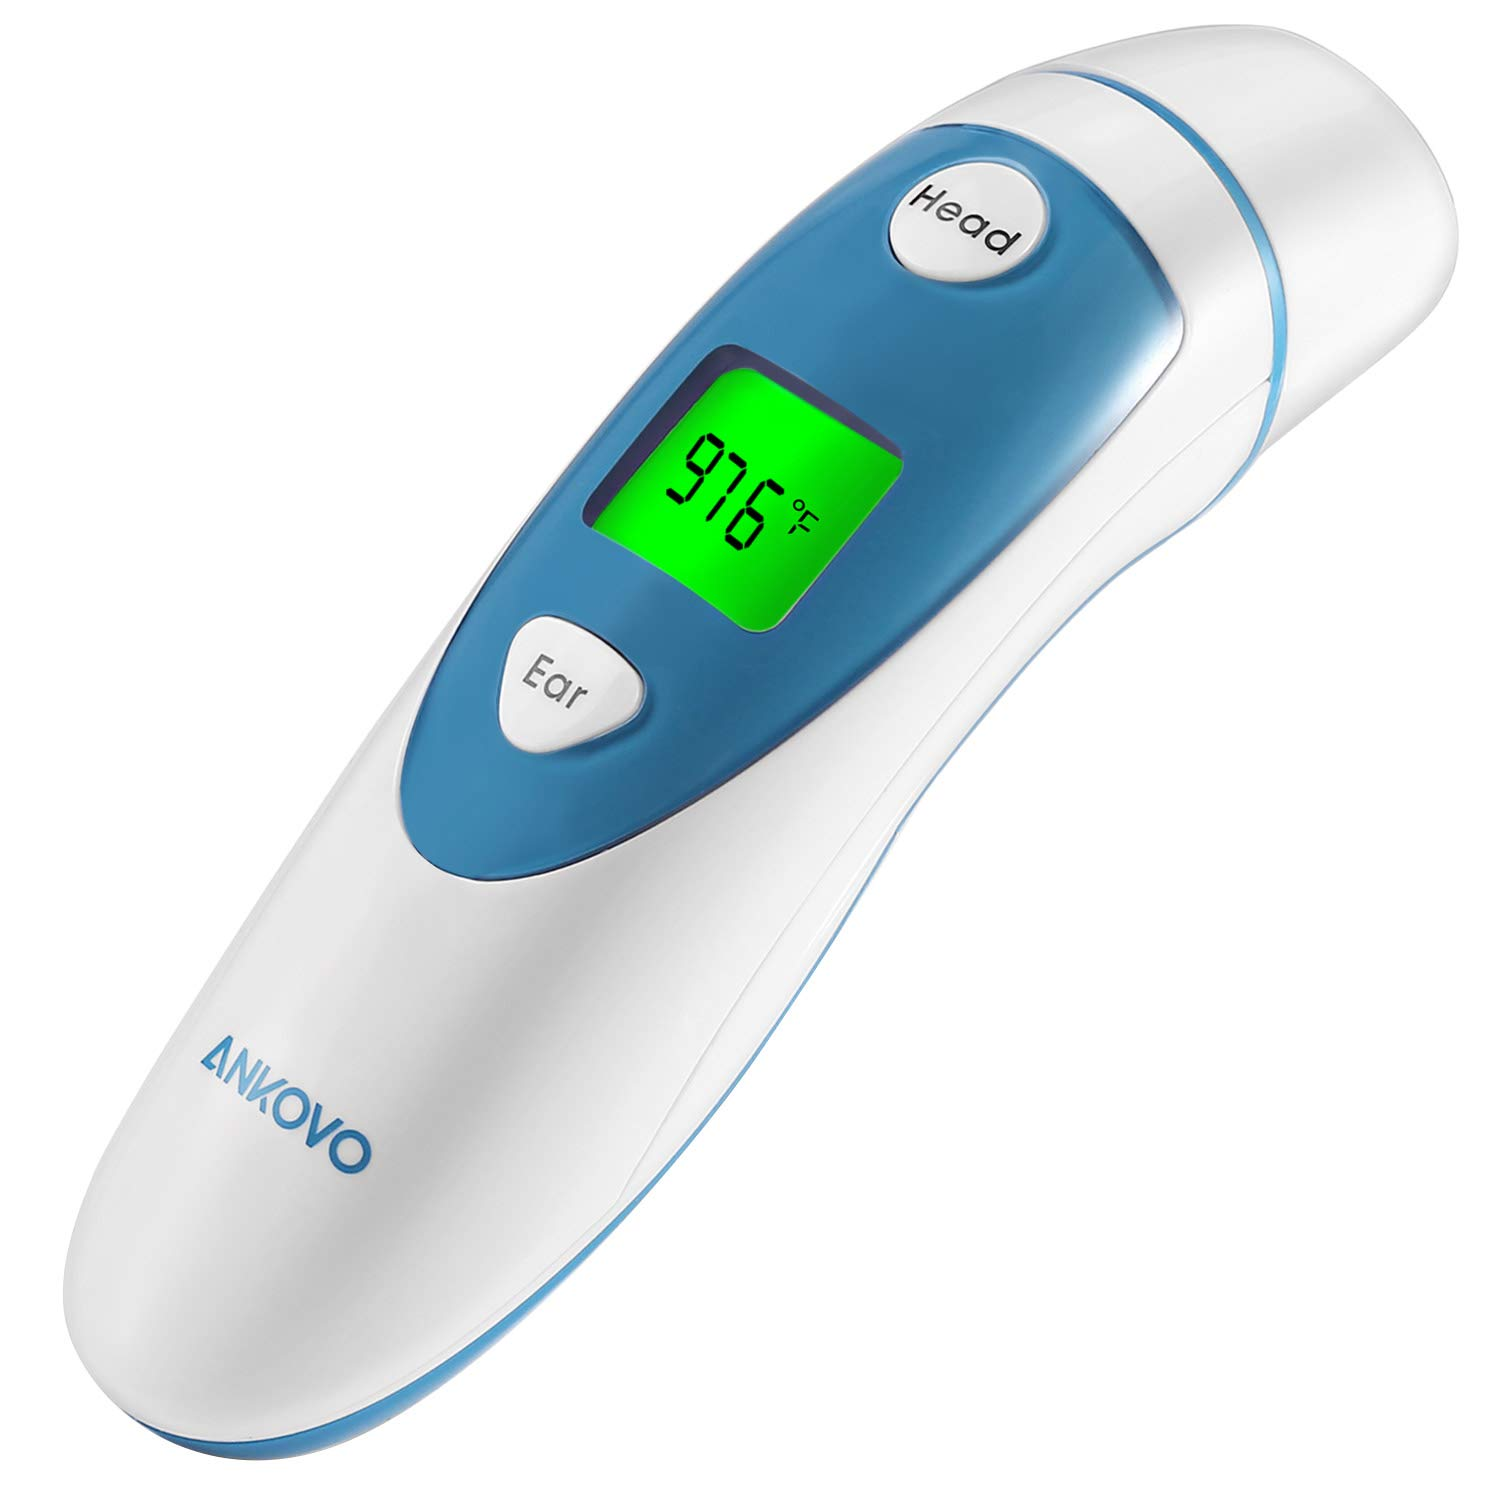 ANKOVO Thermometer for Fever Digital Medical Infrared Forehead and Ear Thermometer for Baby, Kids and